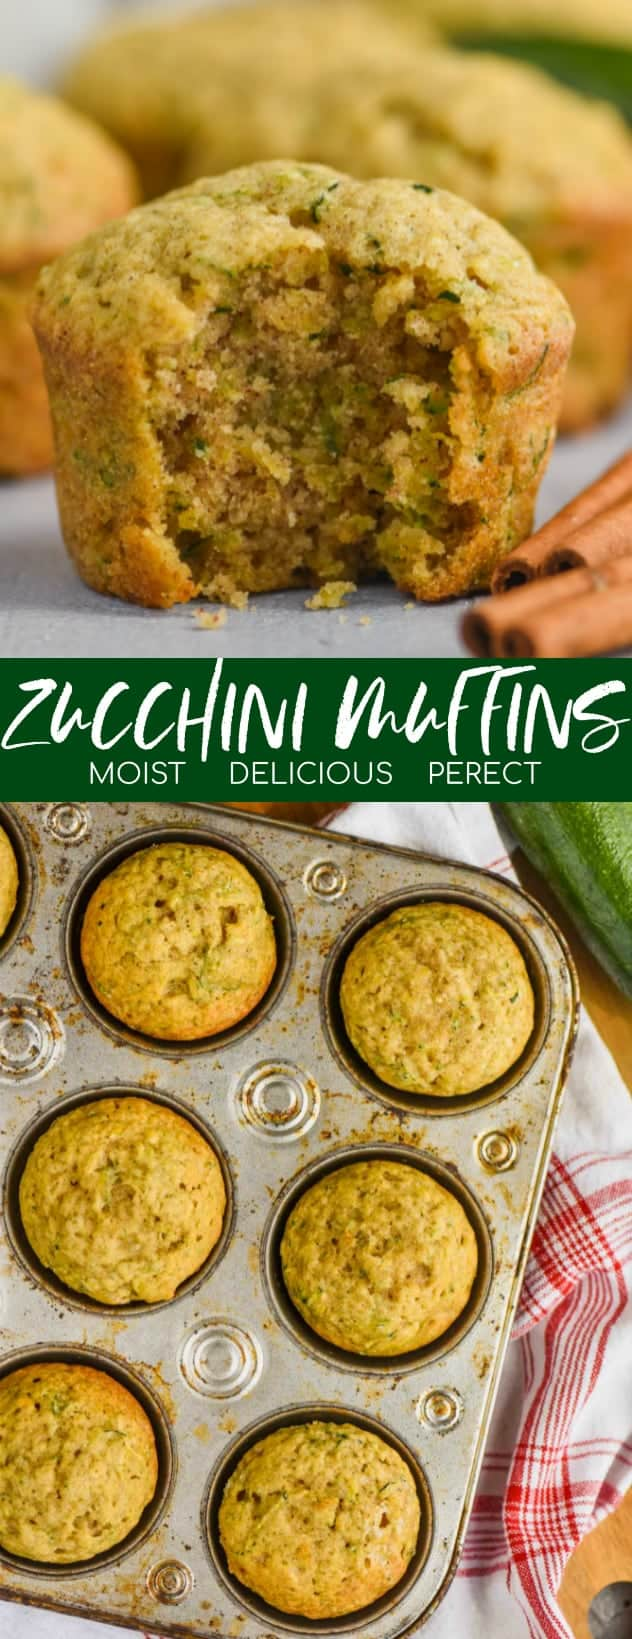 collage of photo of zucchini muffins